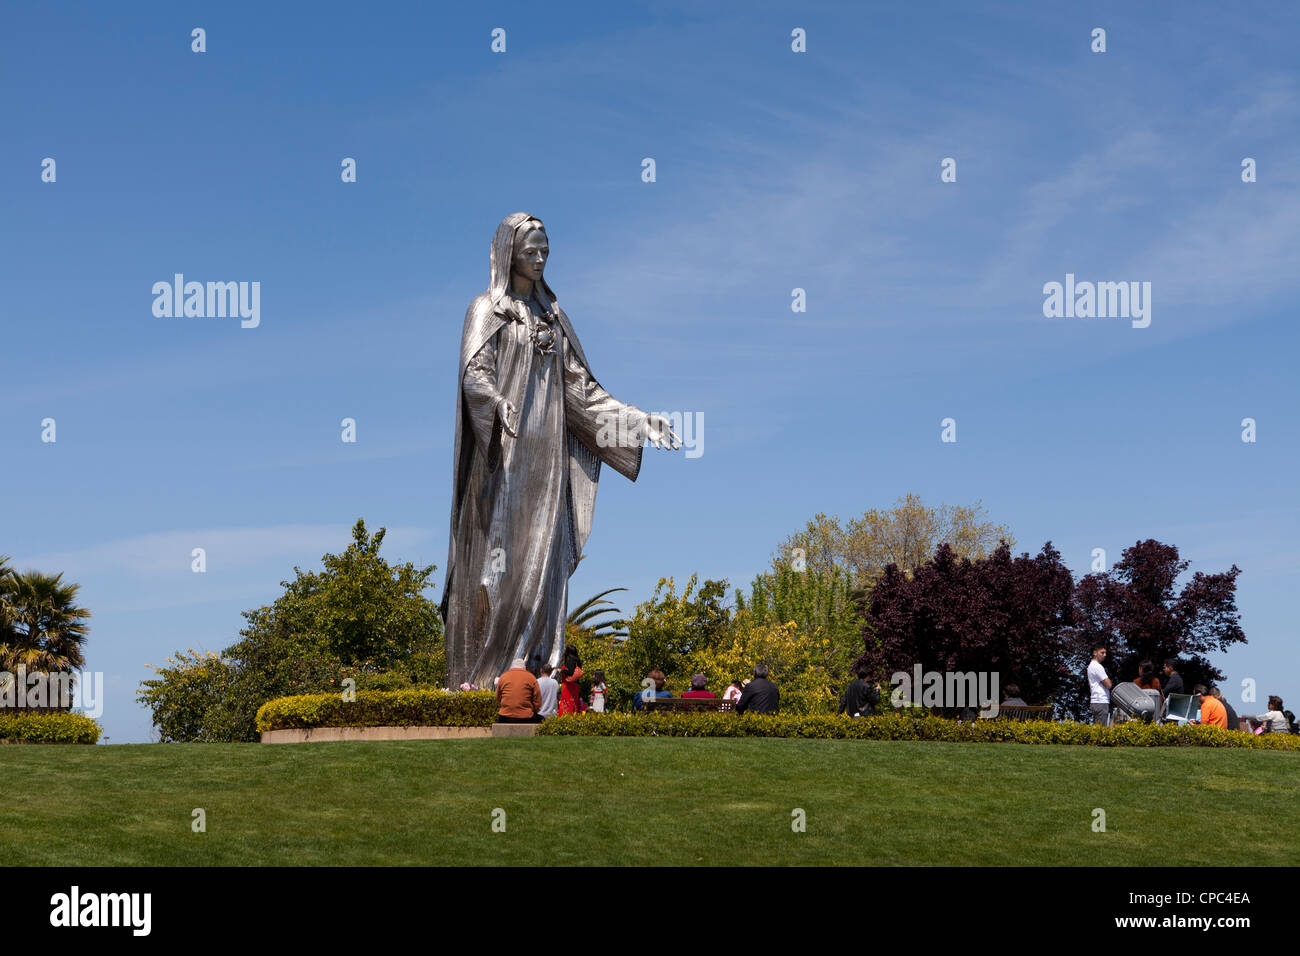 Stainless steel statue of the Virgin Mary - Stock Image